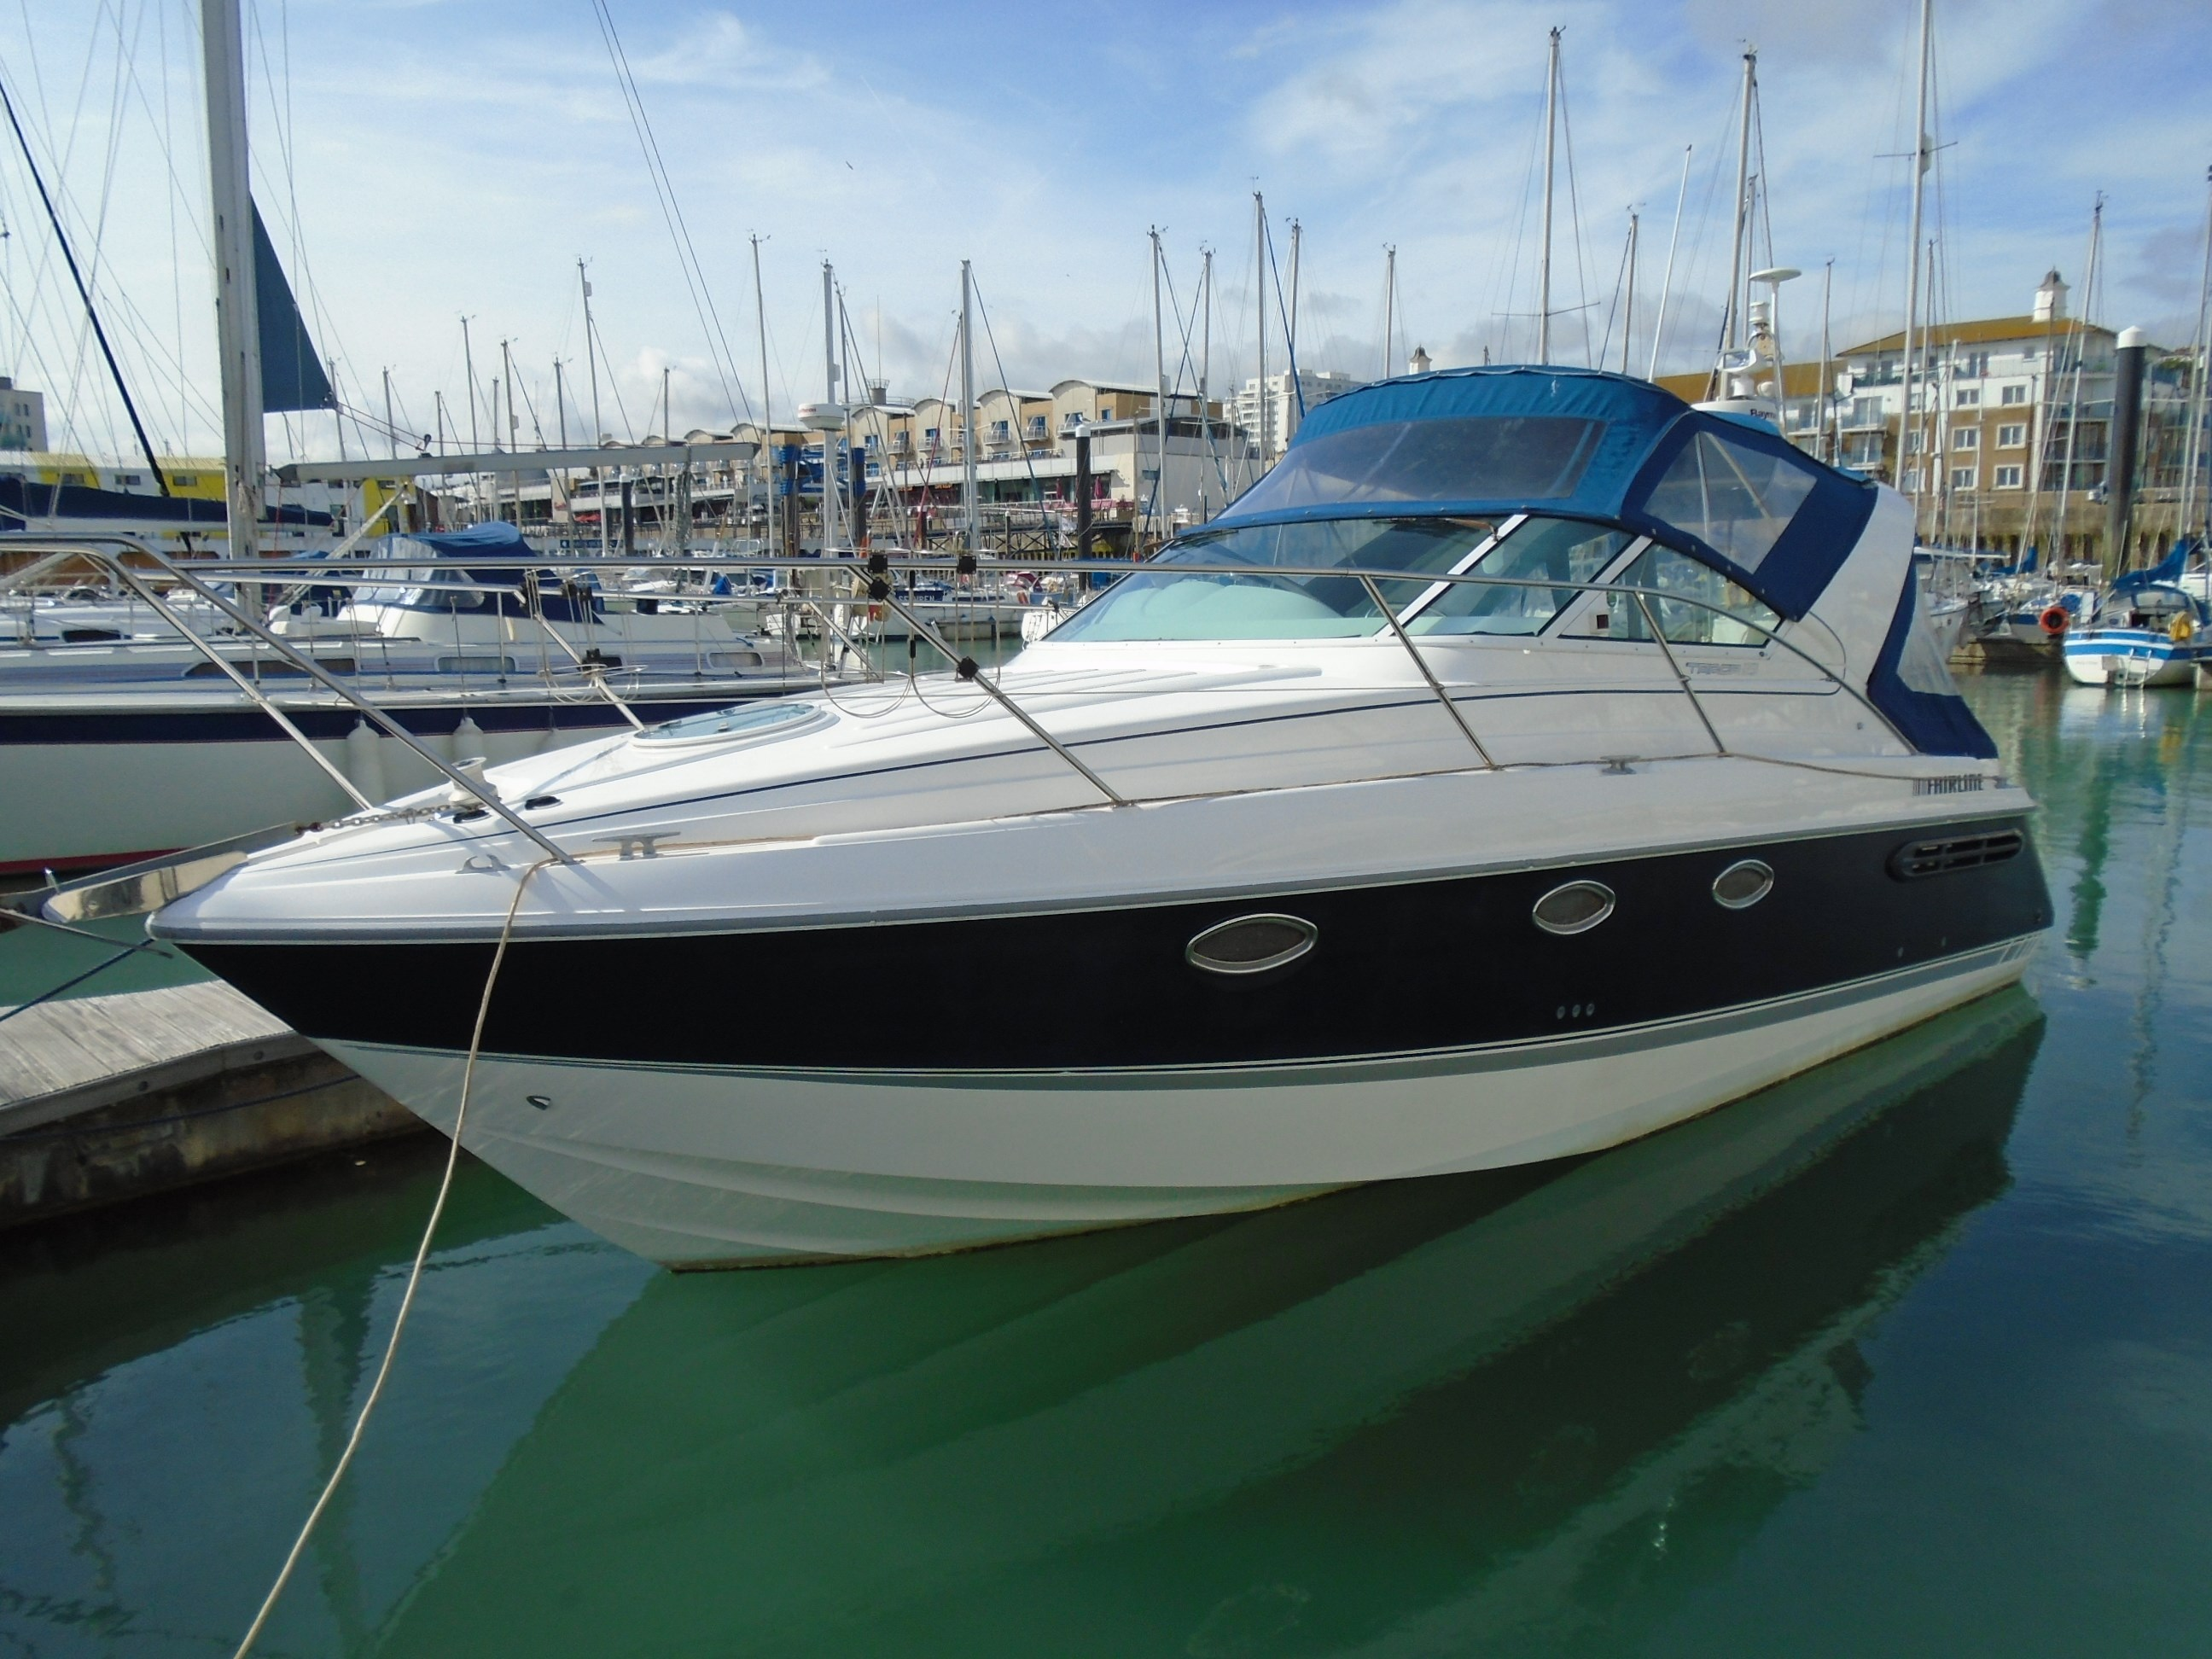 Fairline Targa 29 Fairline Targa 29- 1997